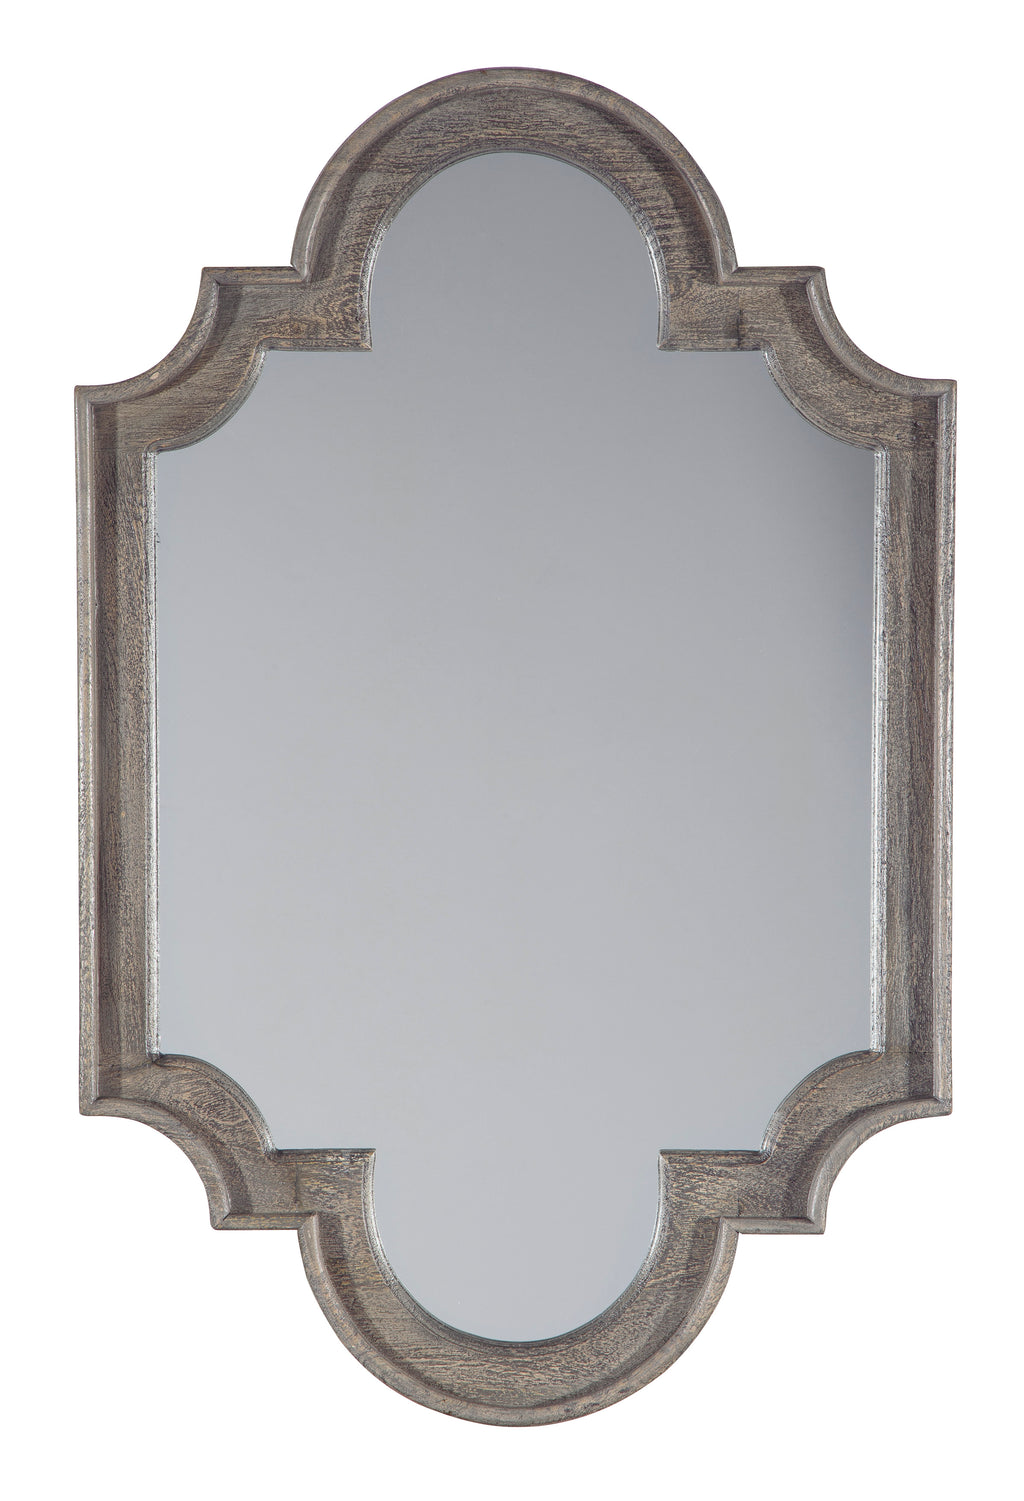 Antique Keyhole Design Accent Wall Mirror